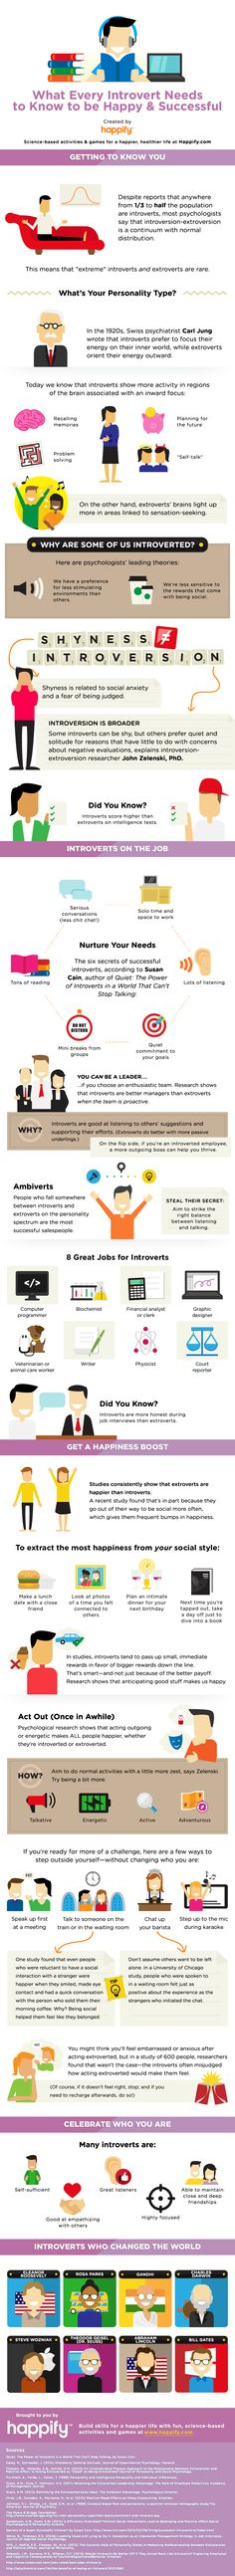 What Every Introvert Should Know To Be Happy And Successful At Work